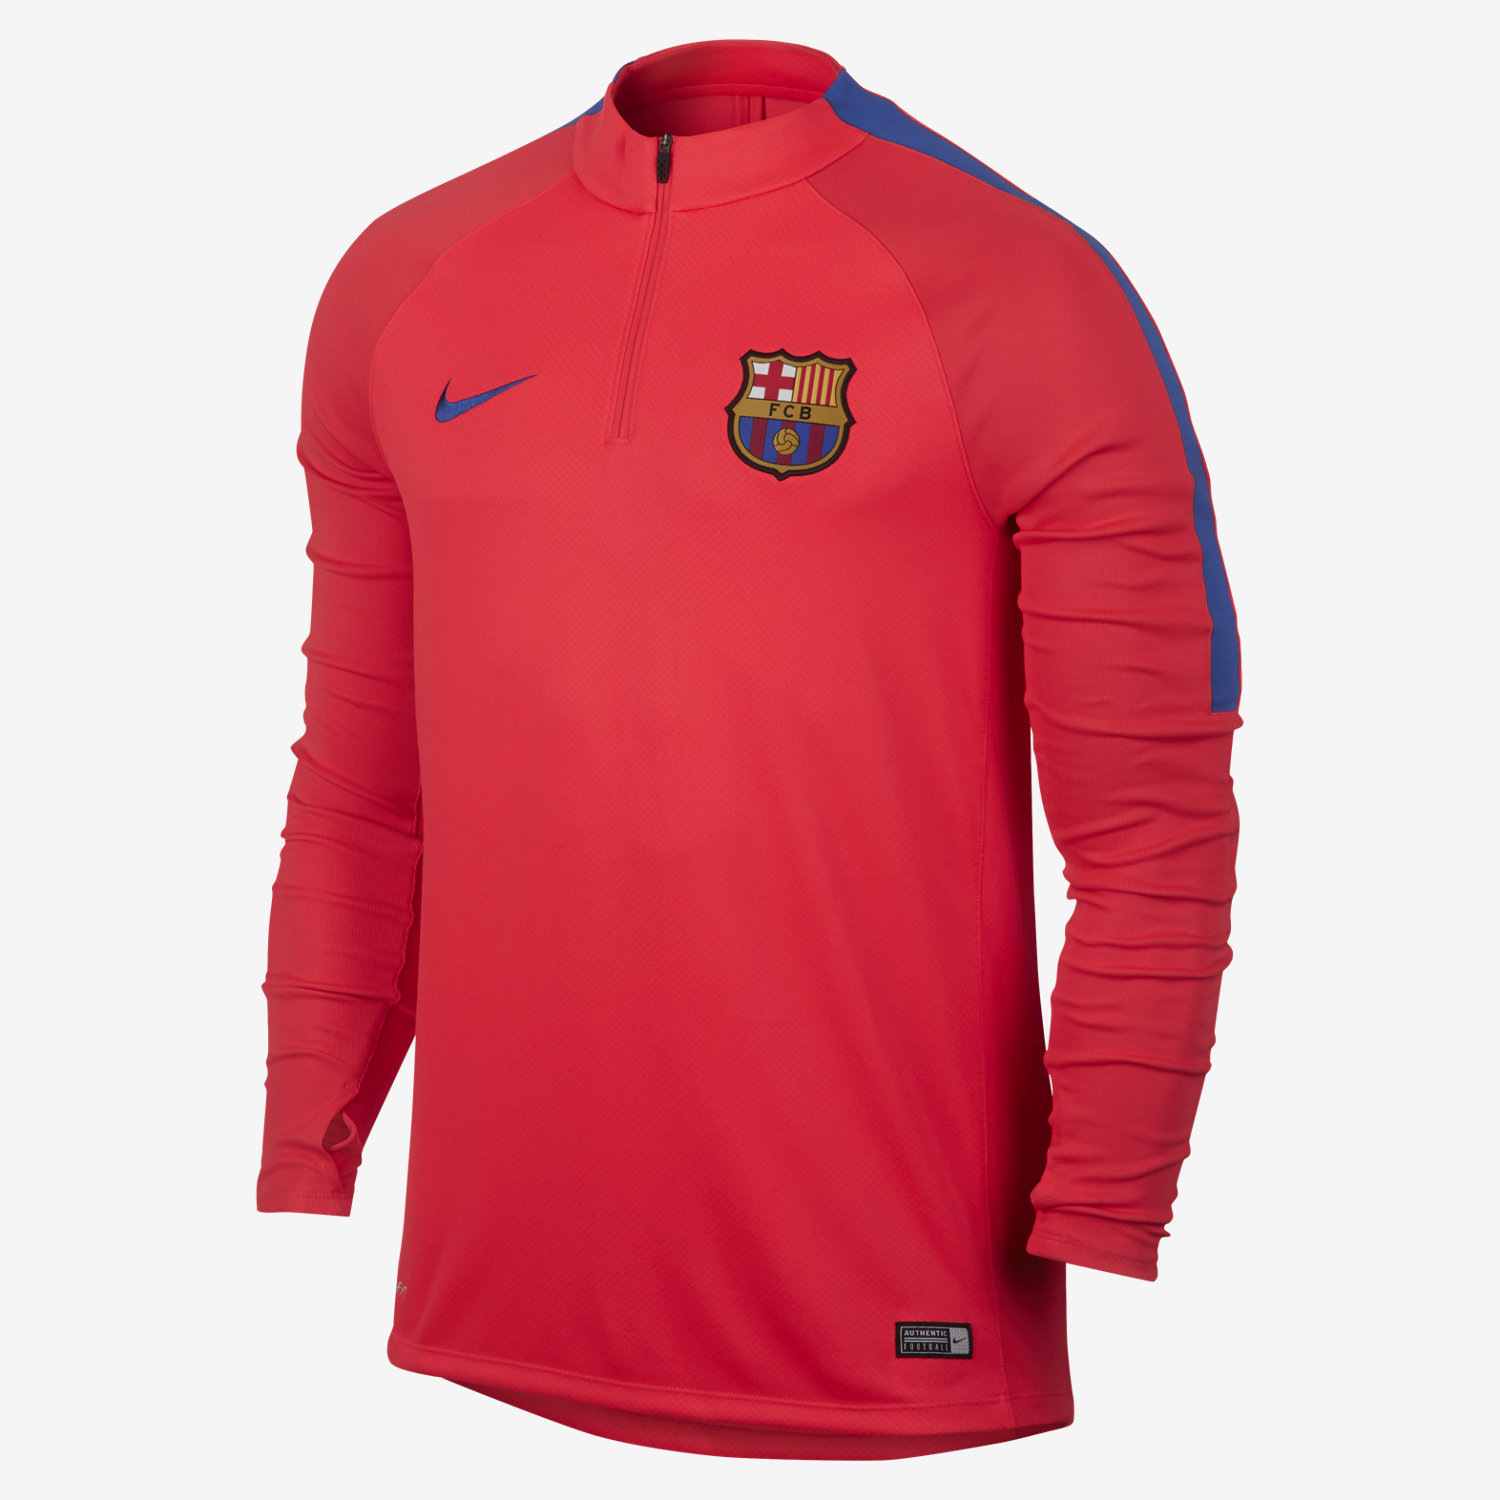 nike free 5 pas cher - FC Barcelona Drill Men's Football Top. Nike.com AT